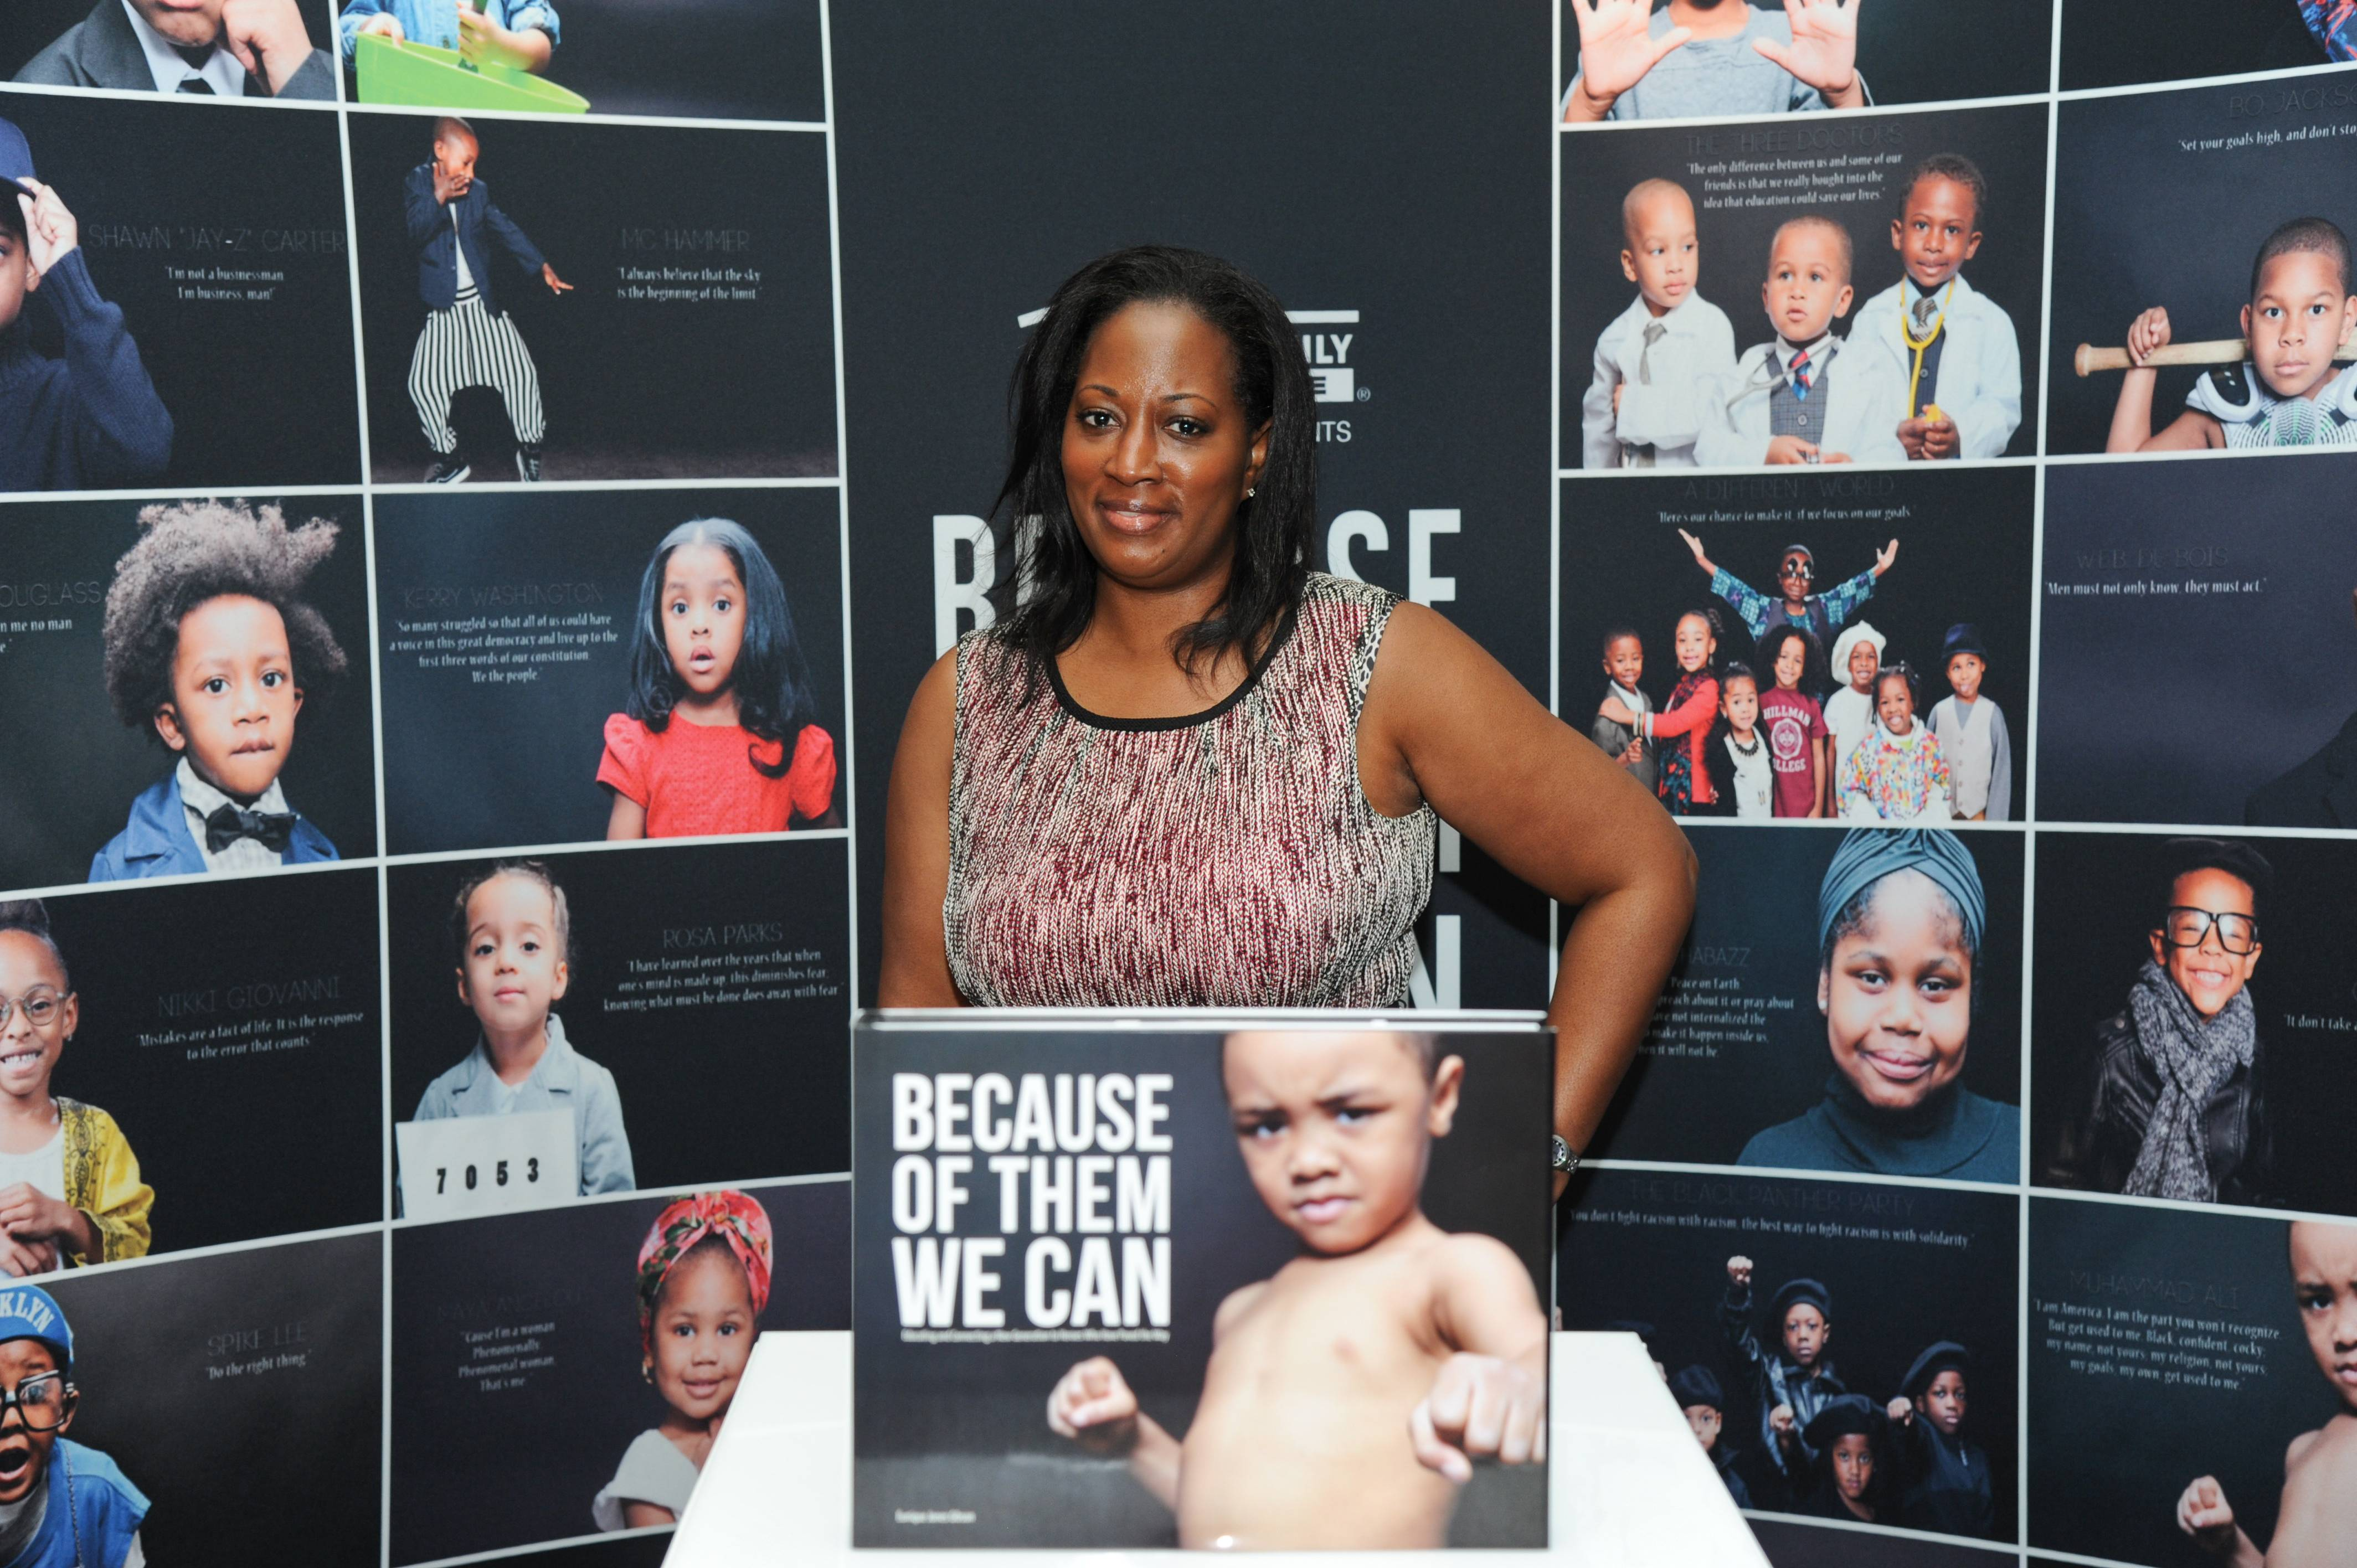 """Power in Pictures - Friends visit the Dream Wall and take a peek at the """"Because of Them, We Can"""" coffee table book, which has an adorable boy (Eunique Jones' son) posing as Muhammad Ali on the cover.  (Photo: Vladimir Banjanac for BET)"""